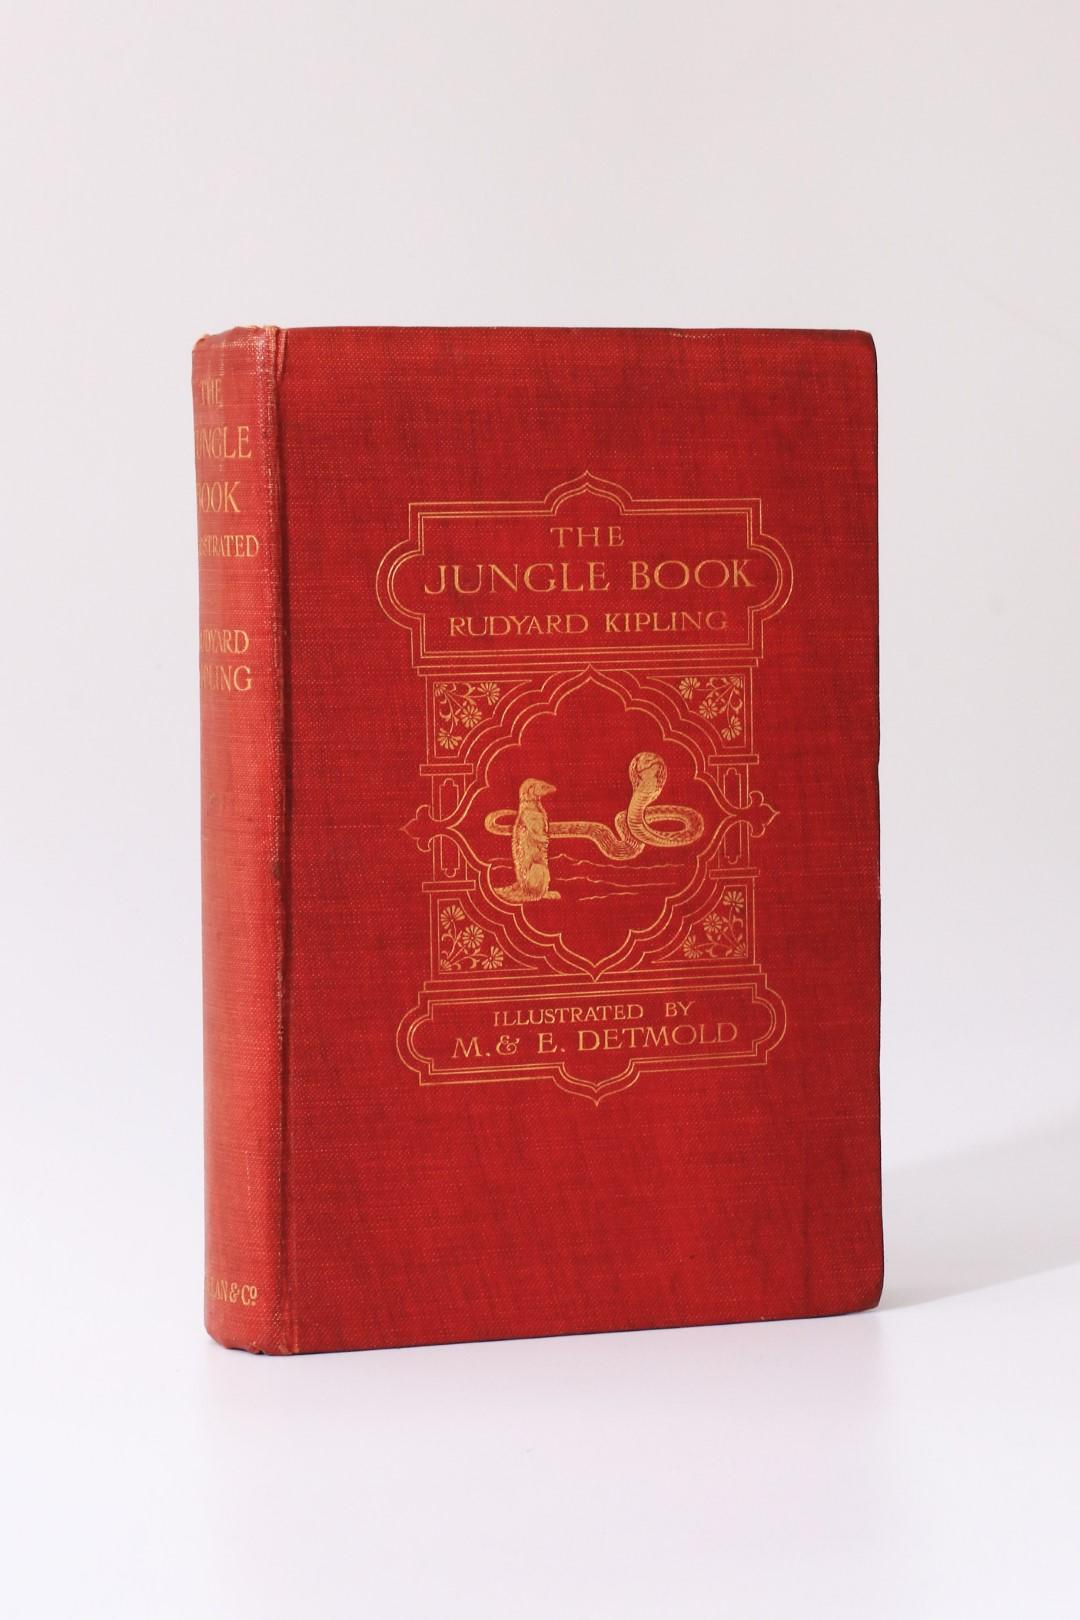 Rudyard Kipling - The Jungle Book - Macmillan & Co., 1908, First Edition.